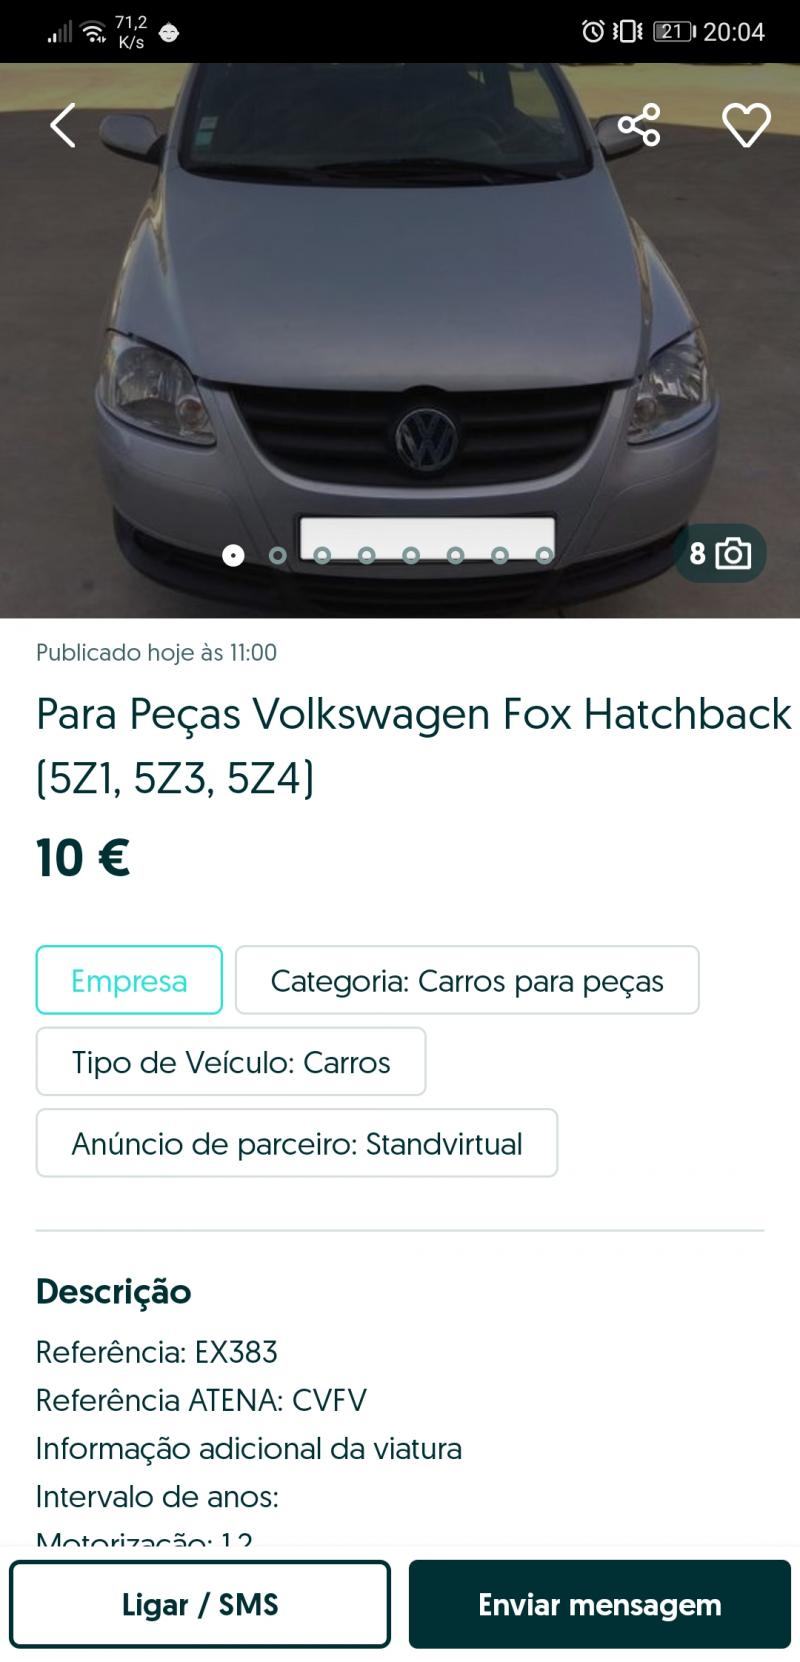 Screenshot_20201105_200439_com.fixeads.olxportugal.jpg